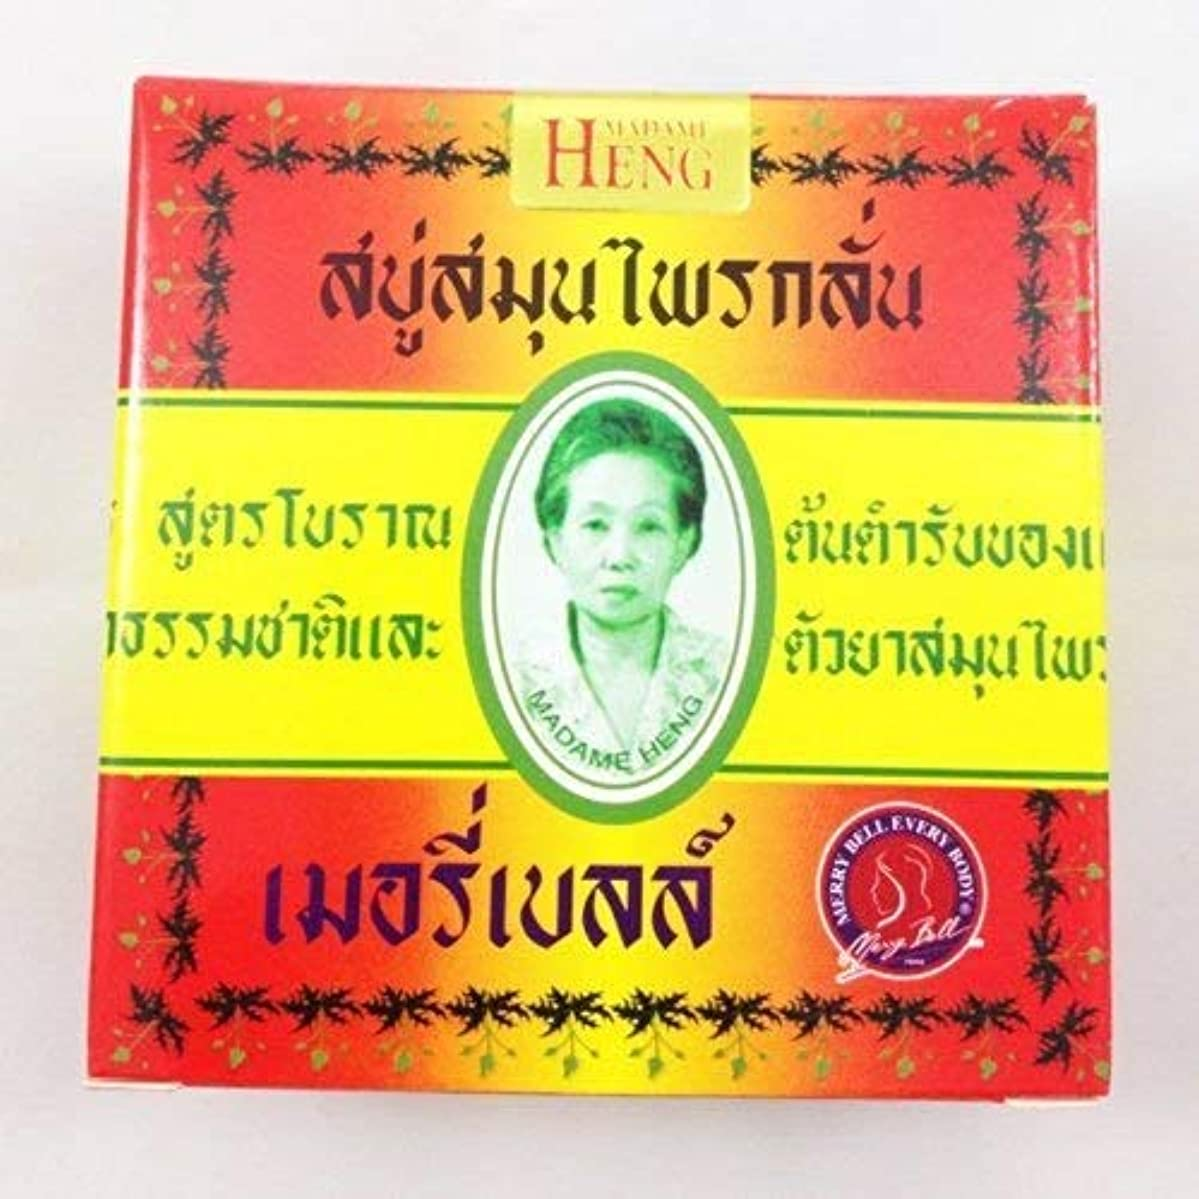 作曲家接辞誤解させるMadame Heng Thai Original Natural Herbal Soap Bar Made in Thailand 160gx2pcs by Ni Yom Thai shop